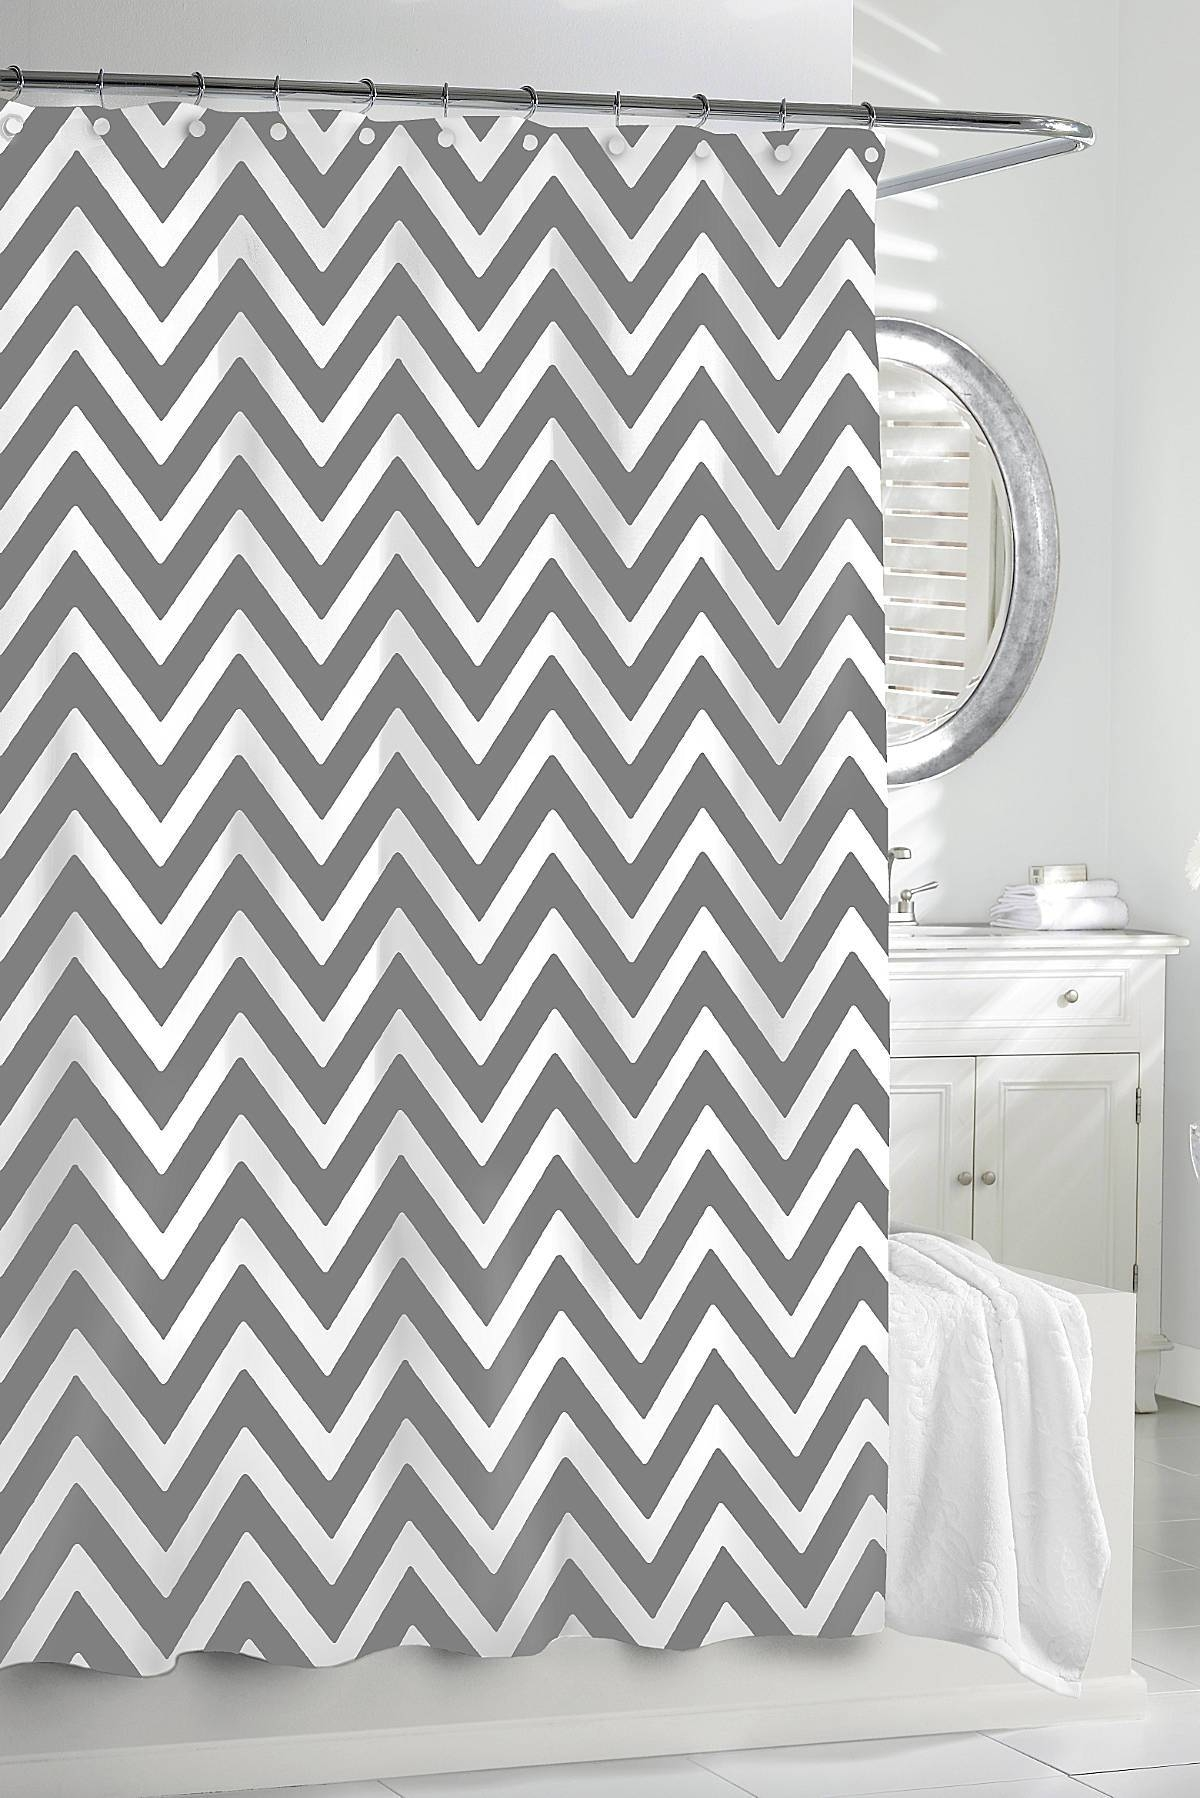 Gracious Home Shower Curtain With Regard To Gray Chevron Shower Curtains (Image 7 of 25)